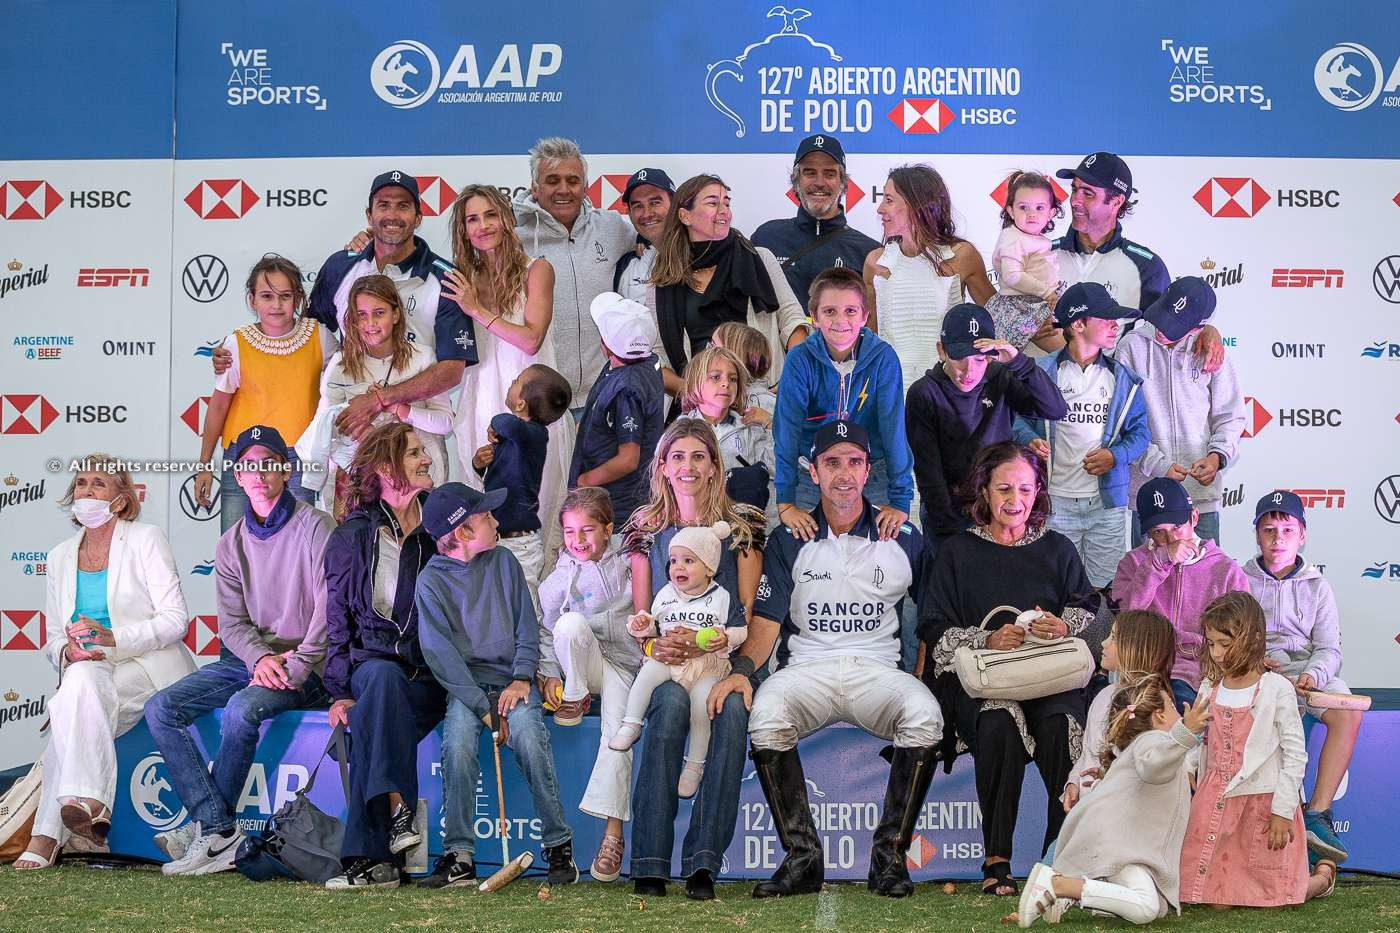 Argentine Open Final: Prize Giving & Awards